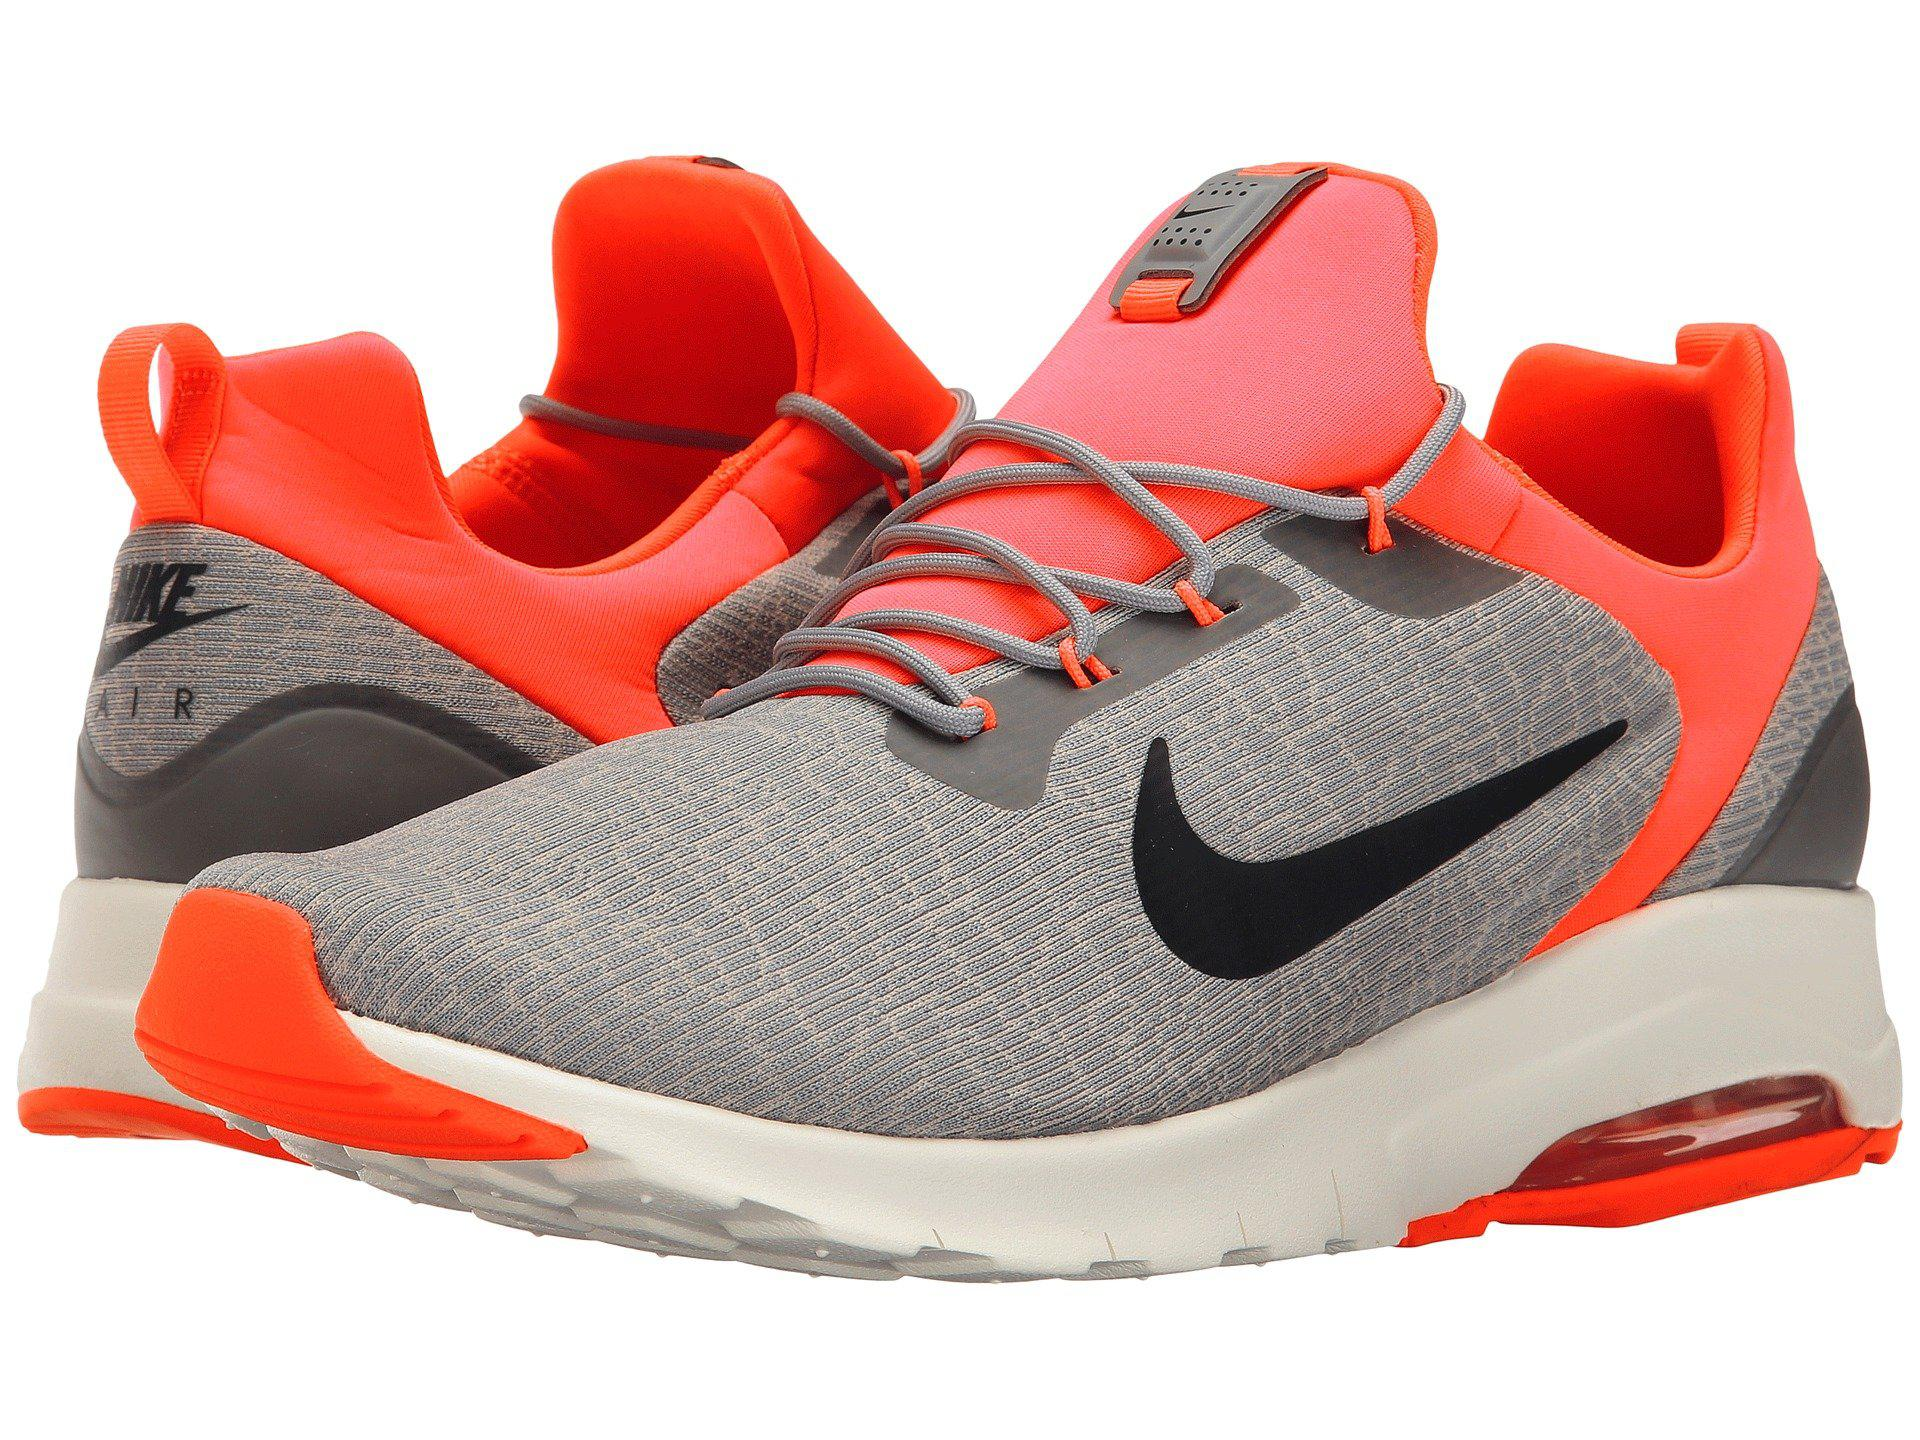 03af8252e3da ... where to buy lyst nike air max motion racer in red for men e0134 d7733